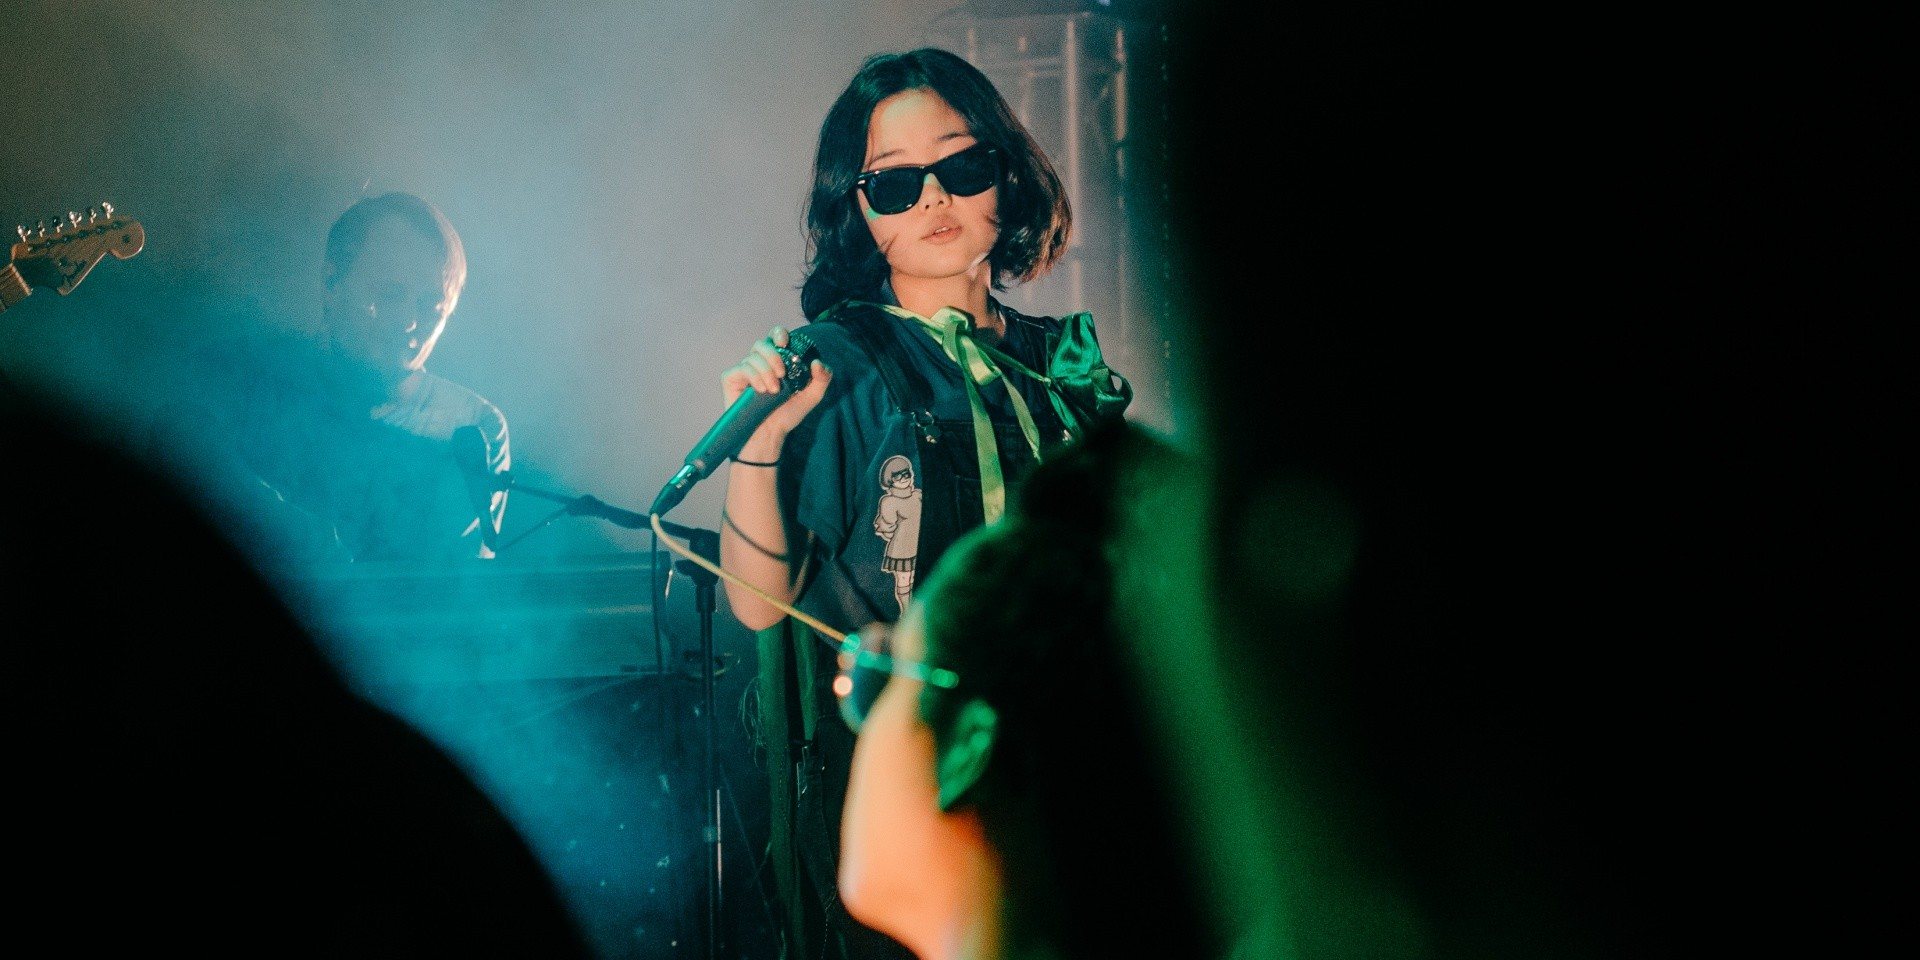 Superorganism threw a sensational dance party at debut show – gig review